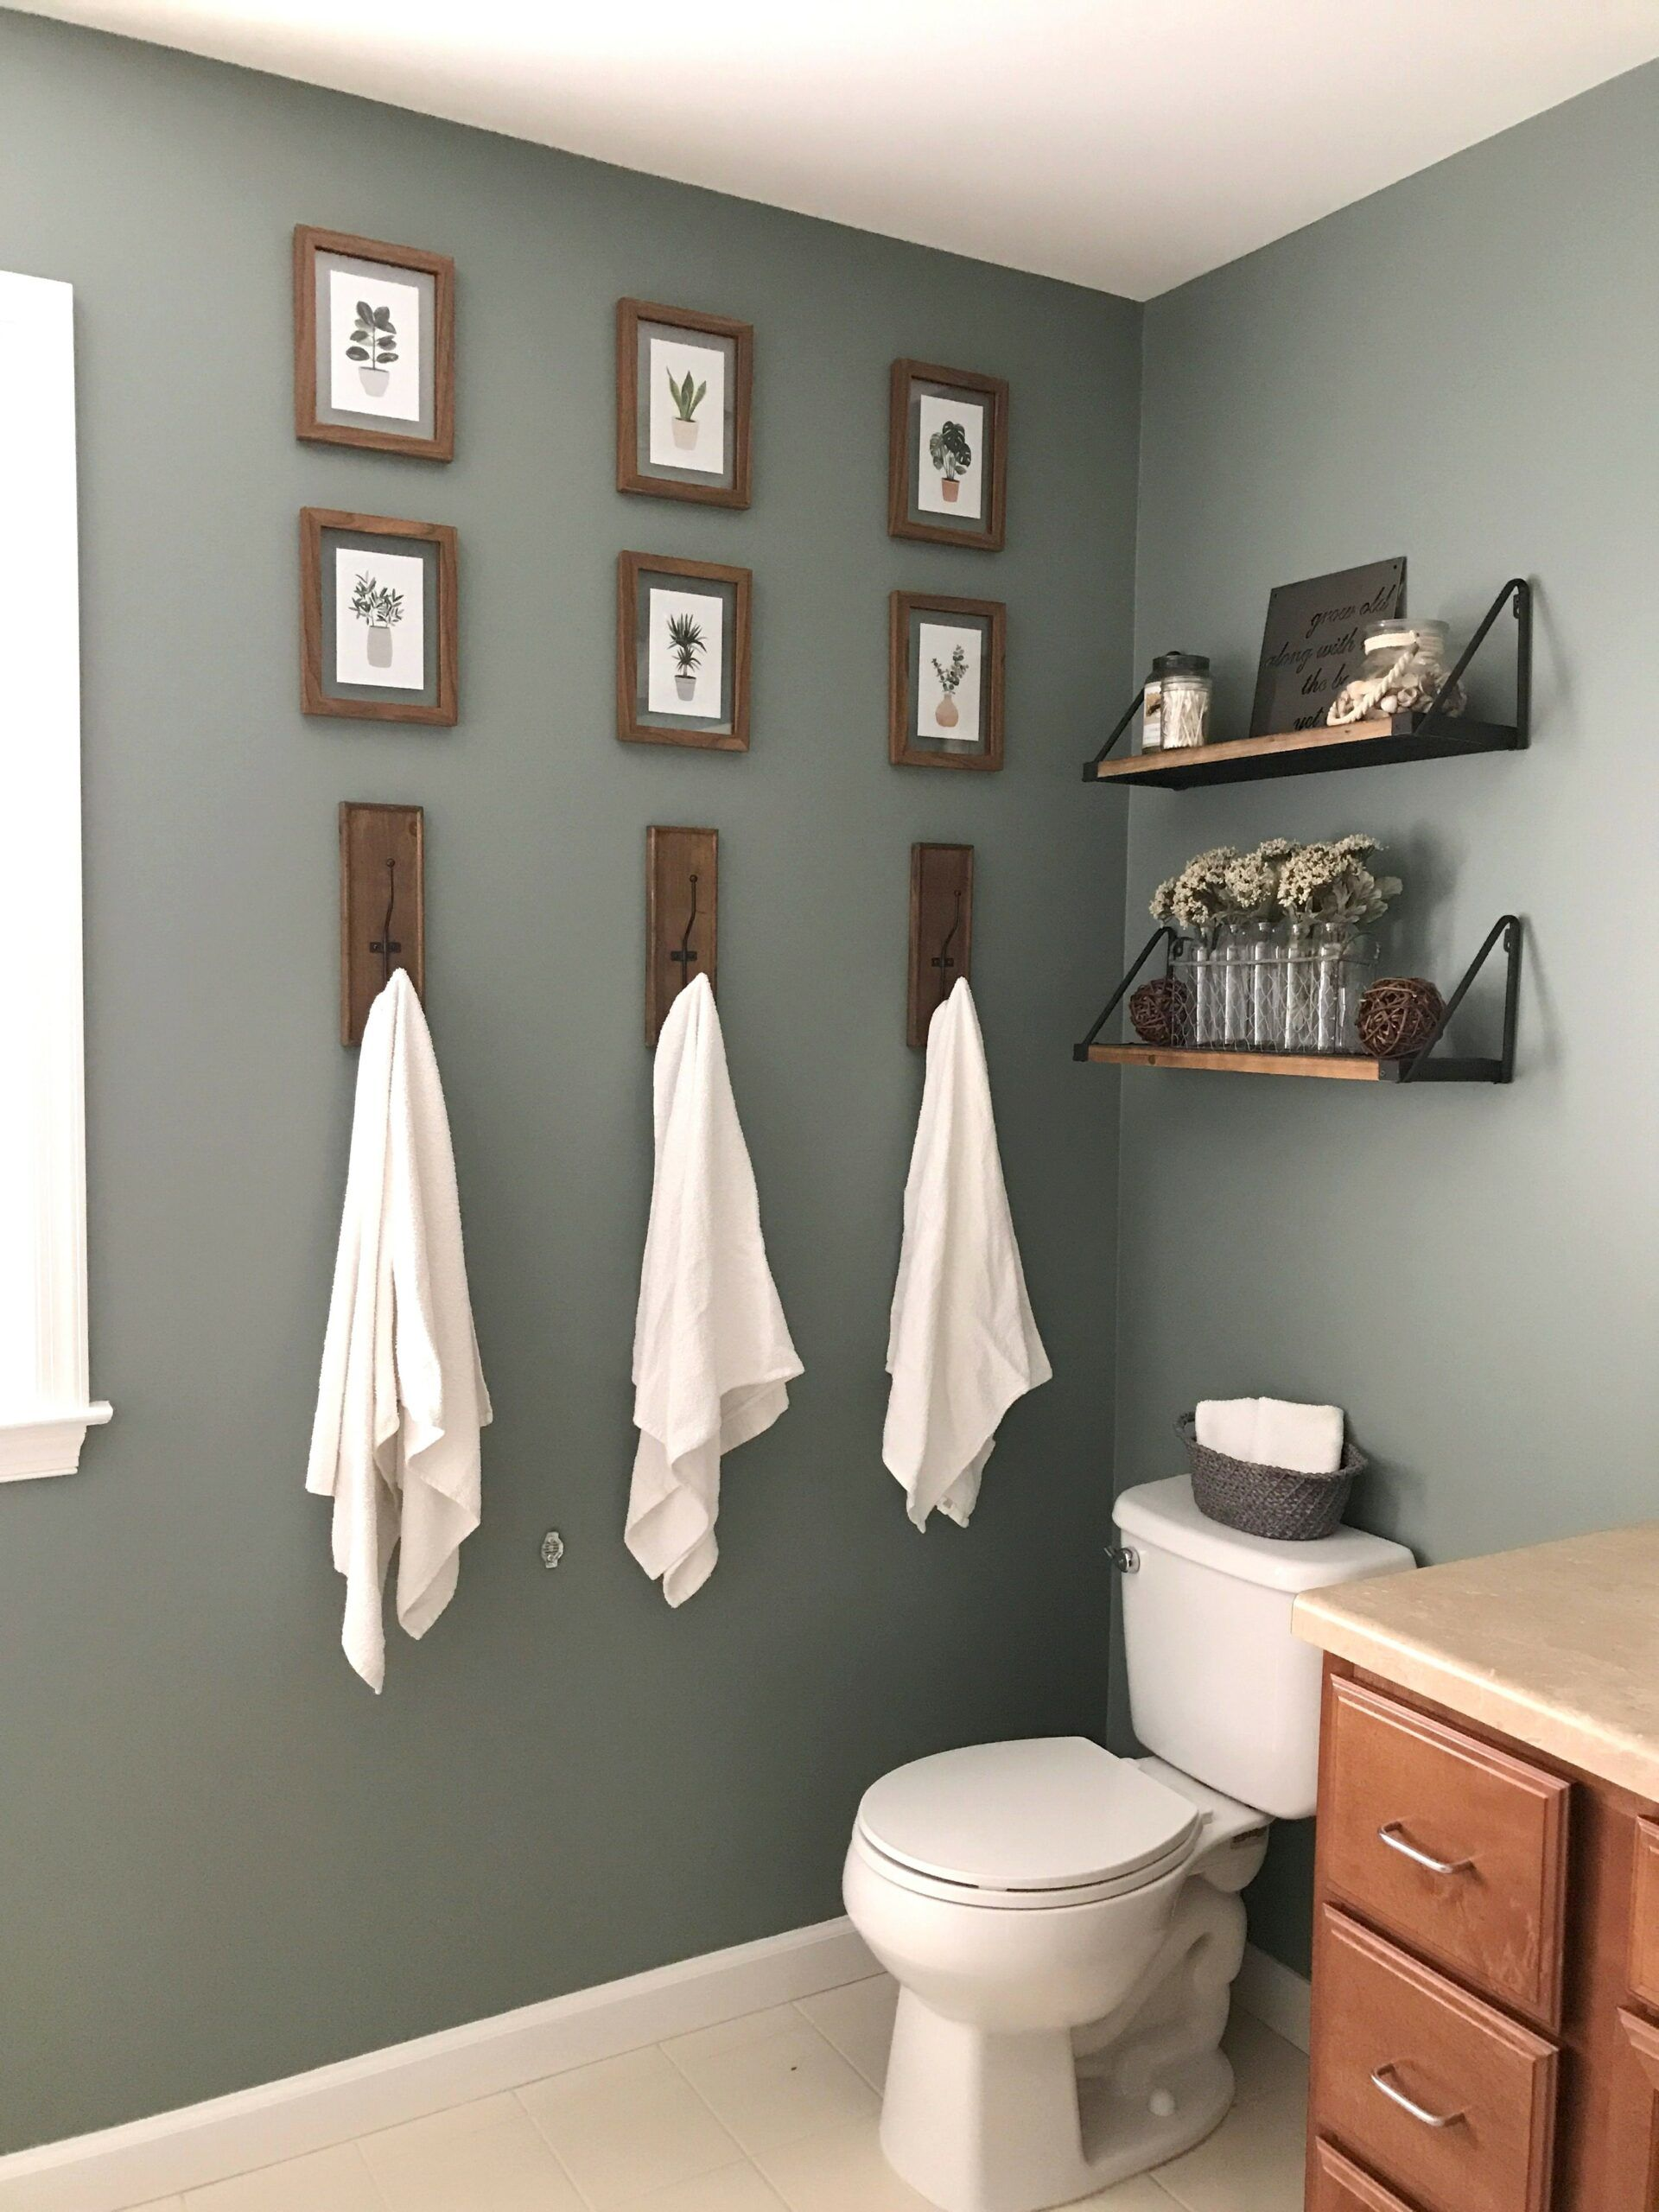 benjamin moore bathroom paint colors 2019 in 2020 small on current popular interior paint colors id=55360